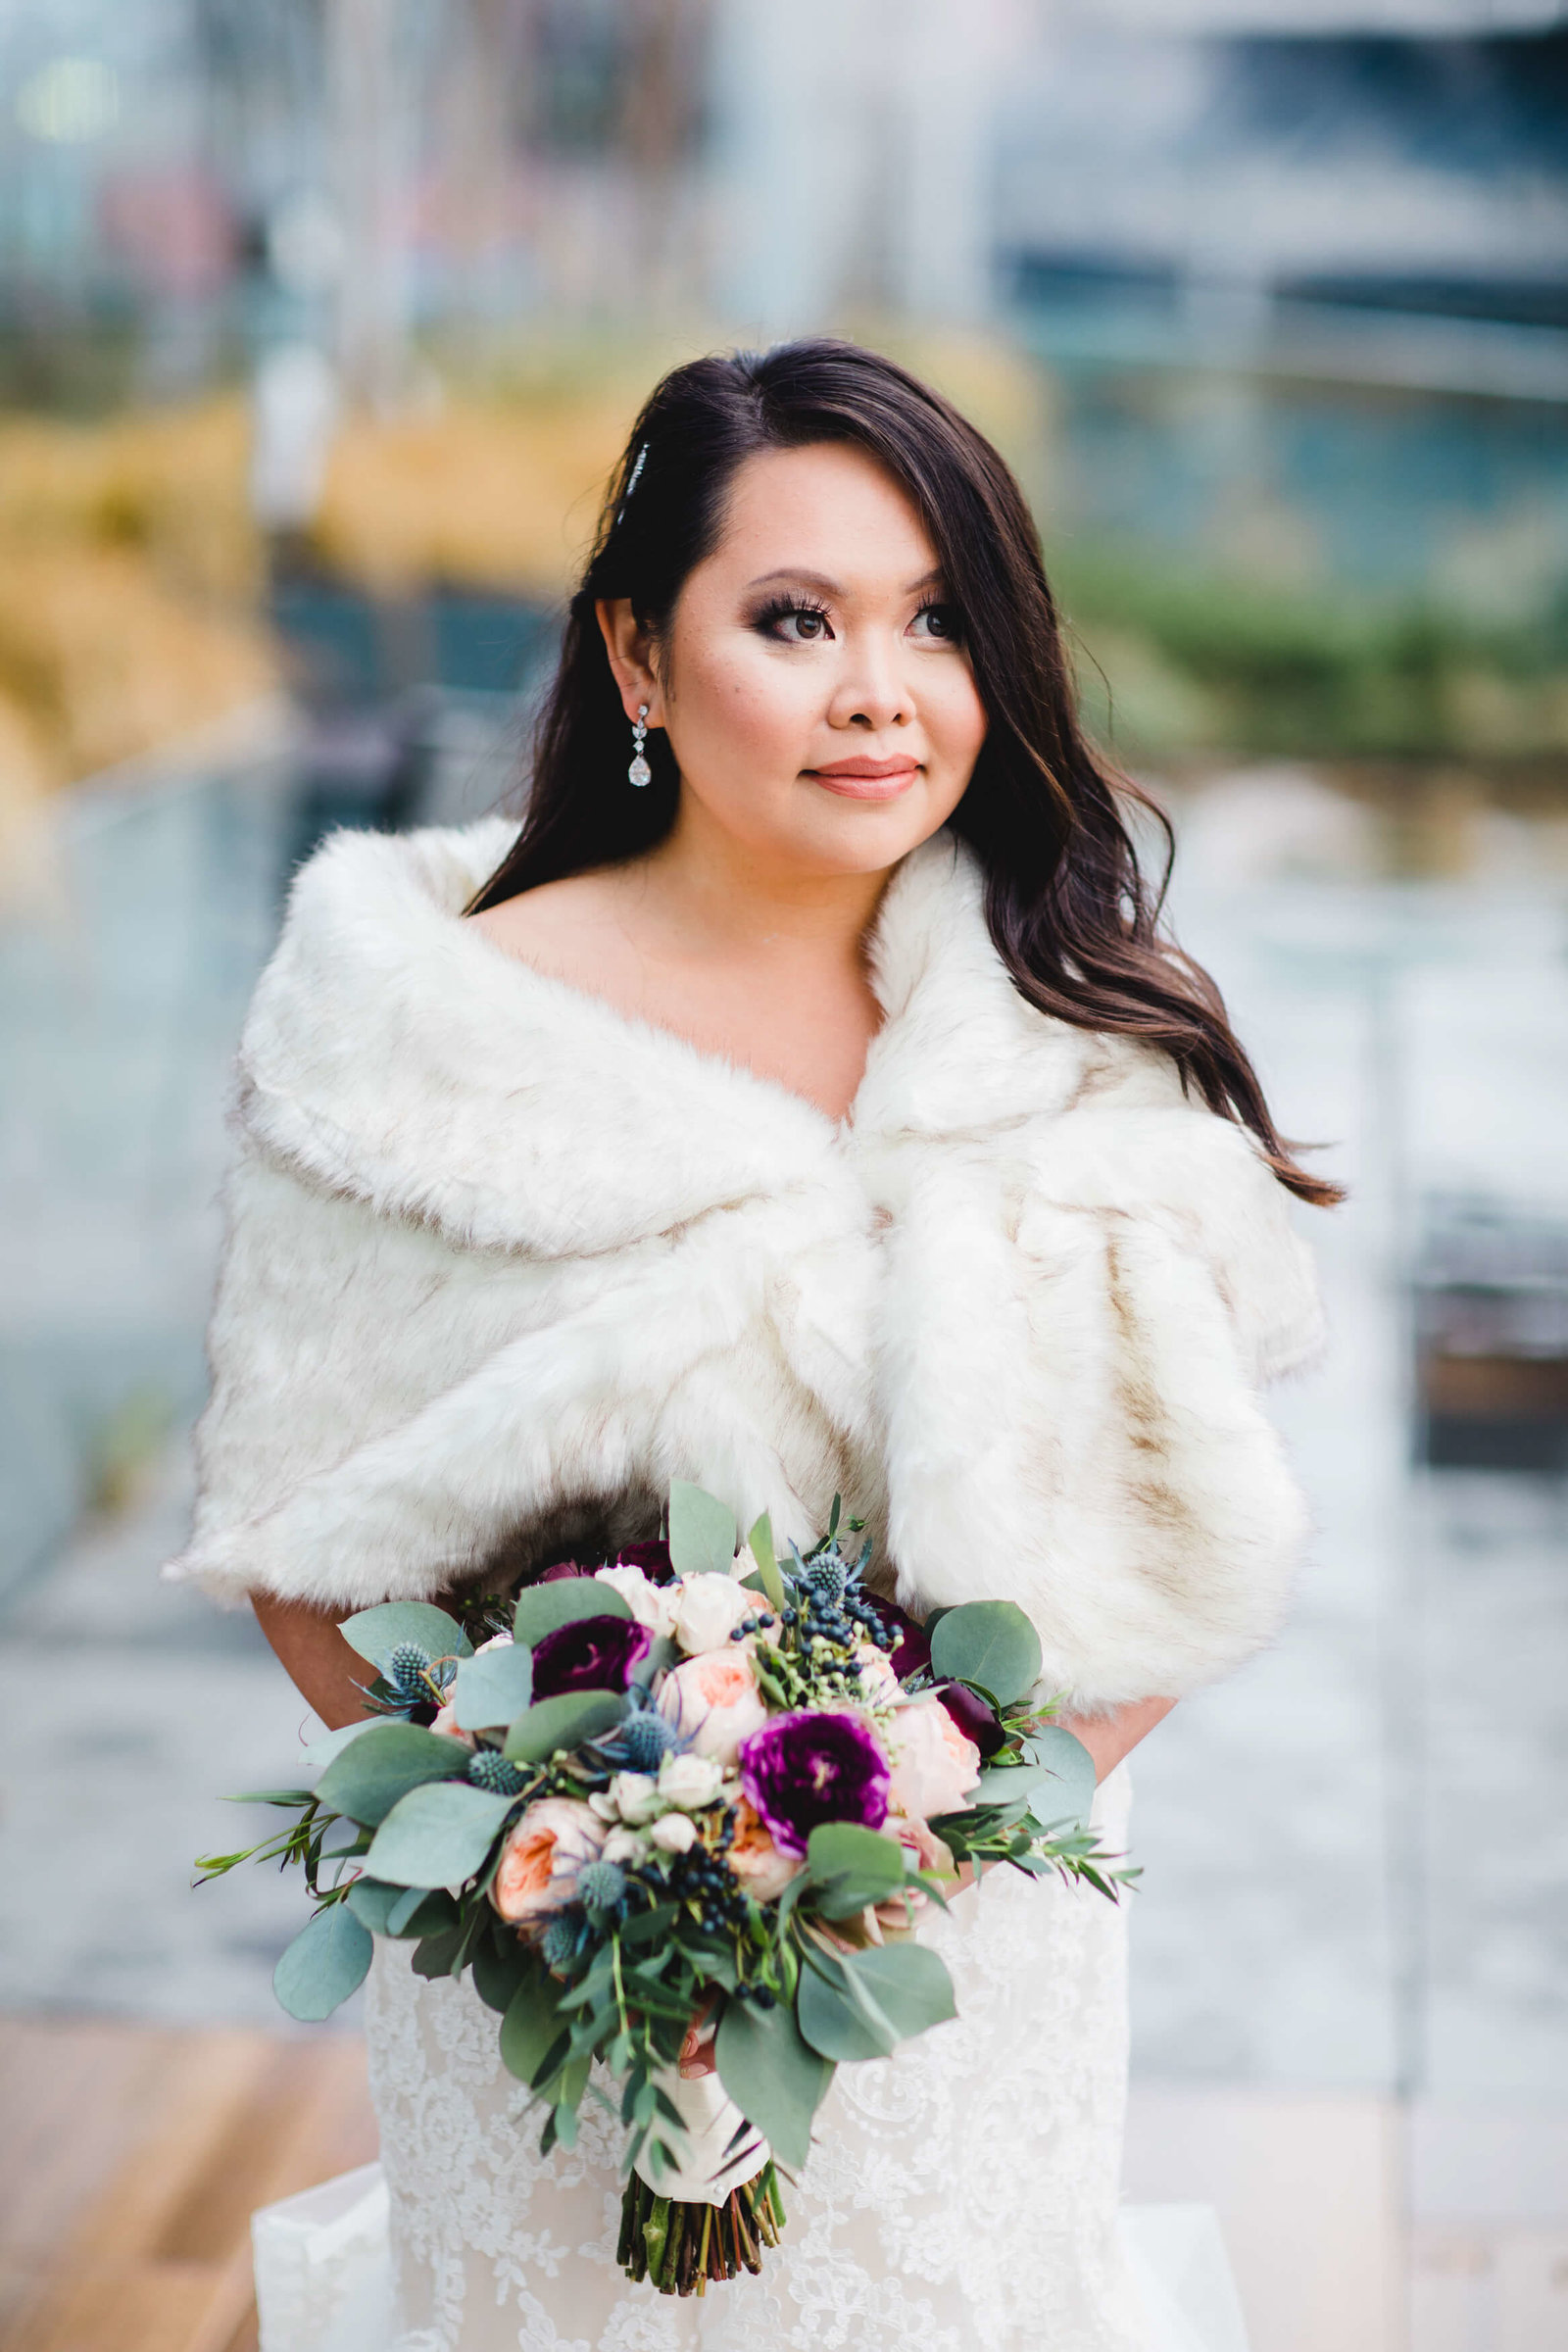 arctic-club-seattle-wedding-linda-chris-by-adina-preston-seattle-weddin-photographer-44